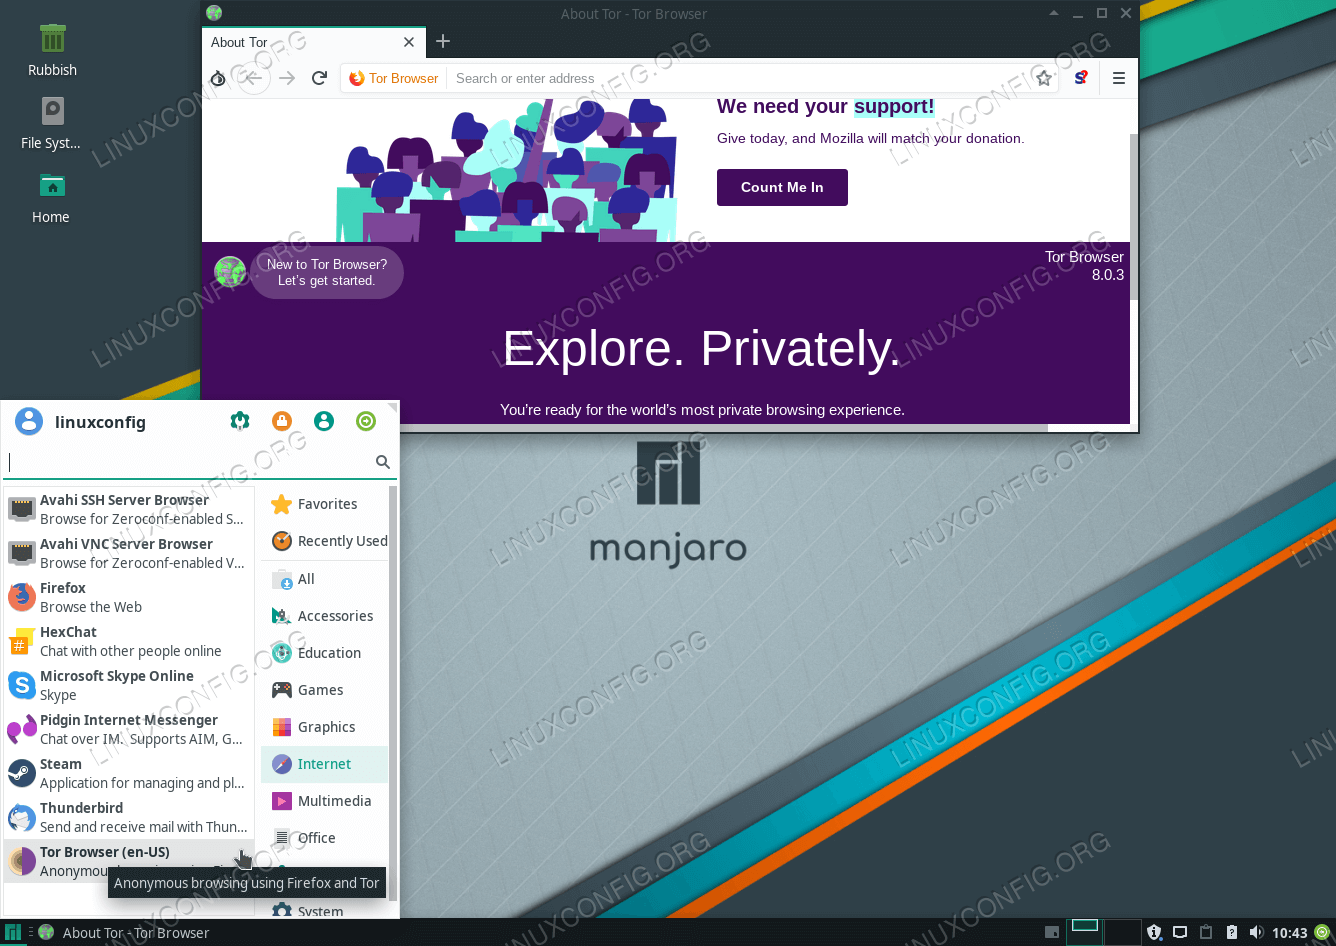 Successful installation of Tor Browser on Manjaro 18 Linux